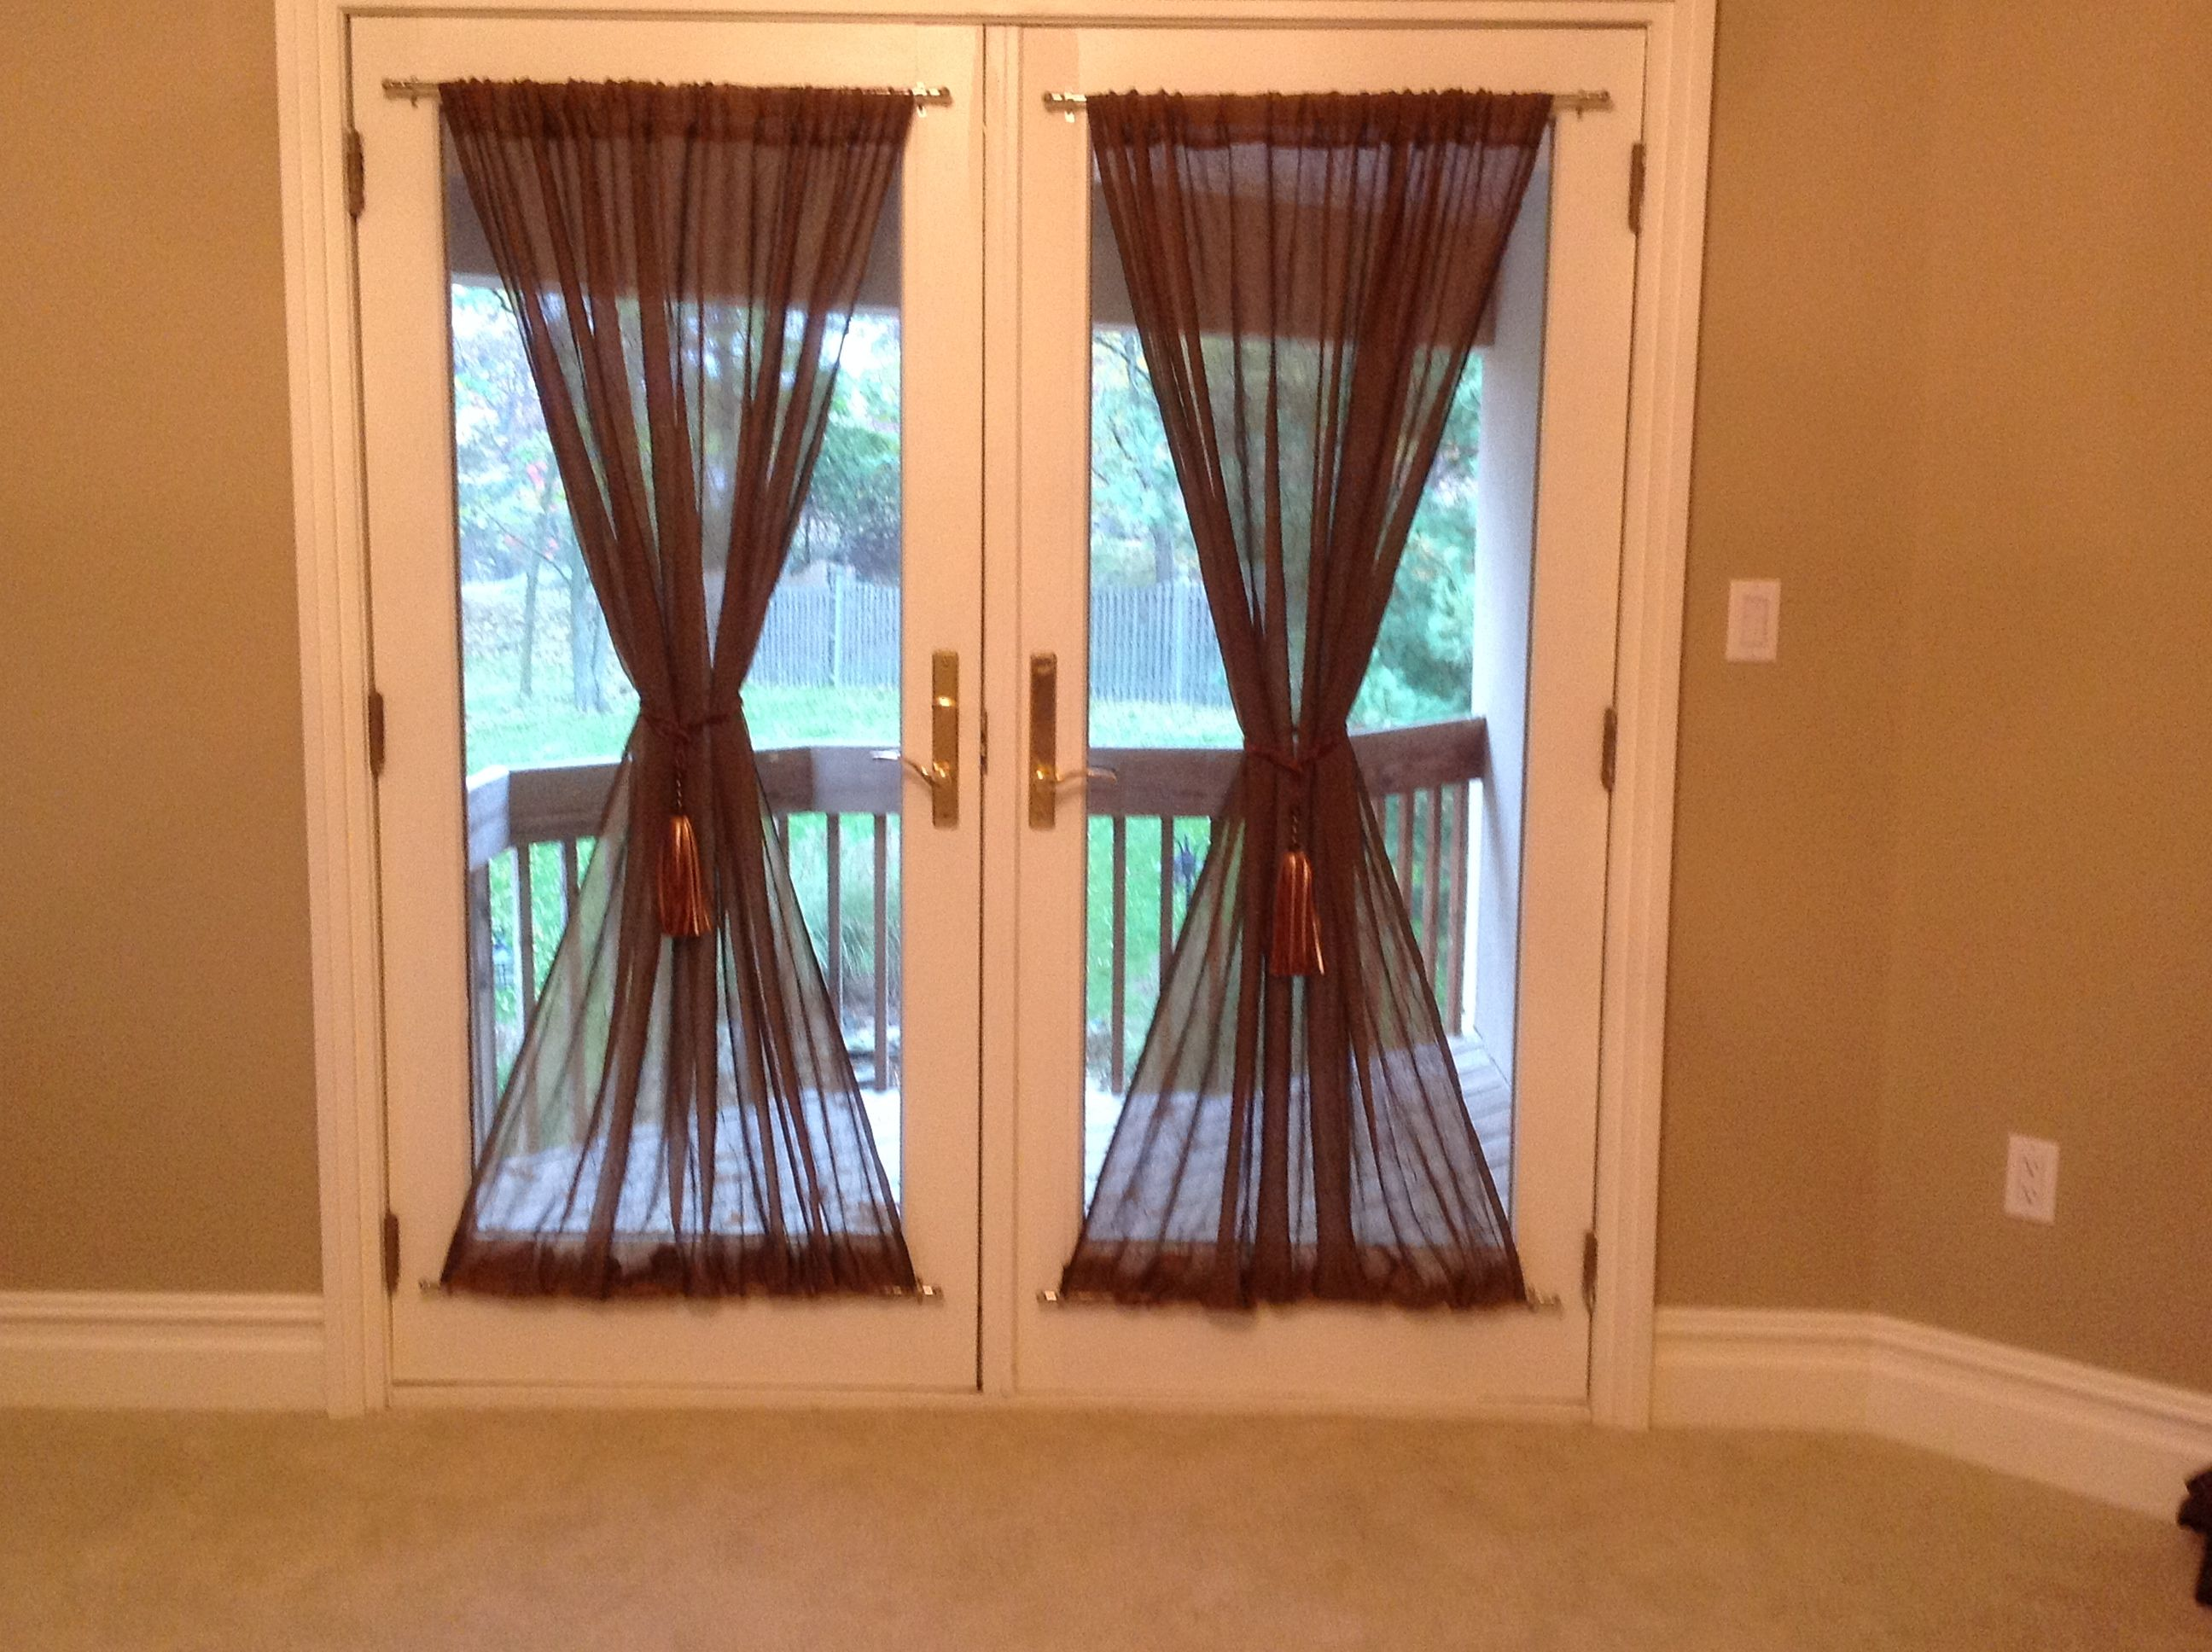 Diy French door curtains | Fun and easy DIY projects ...